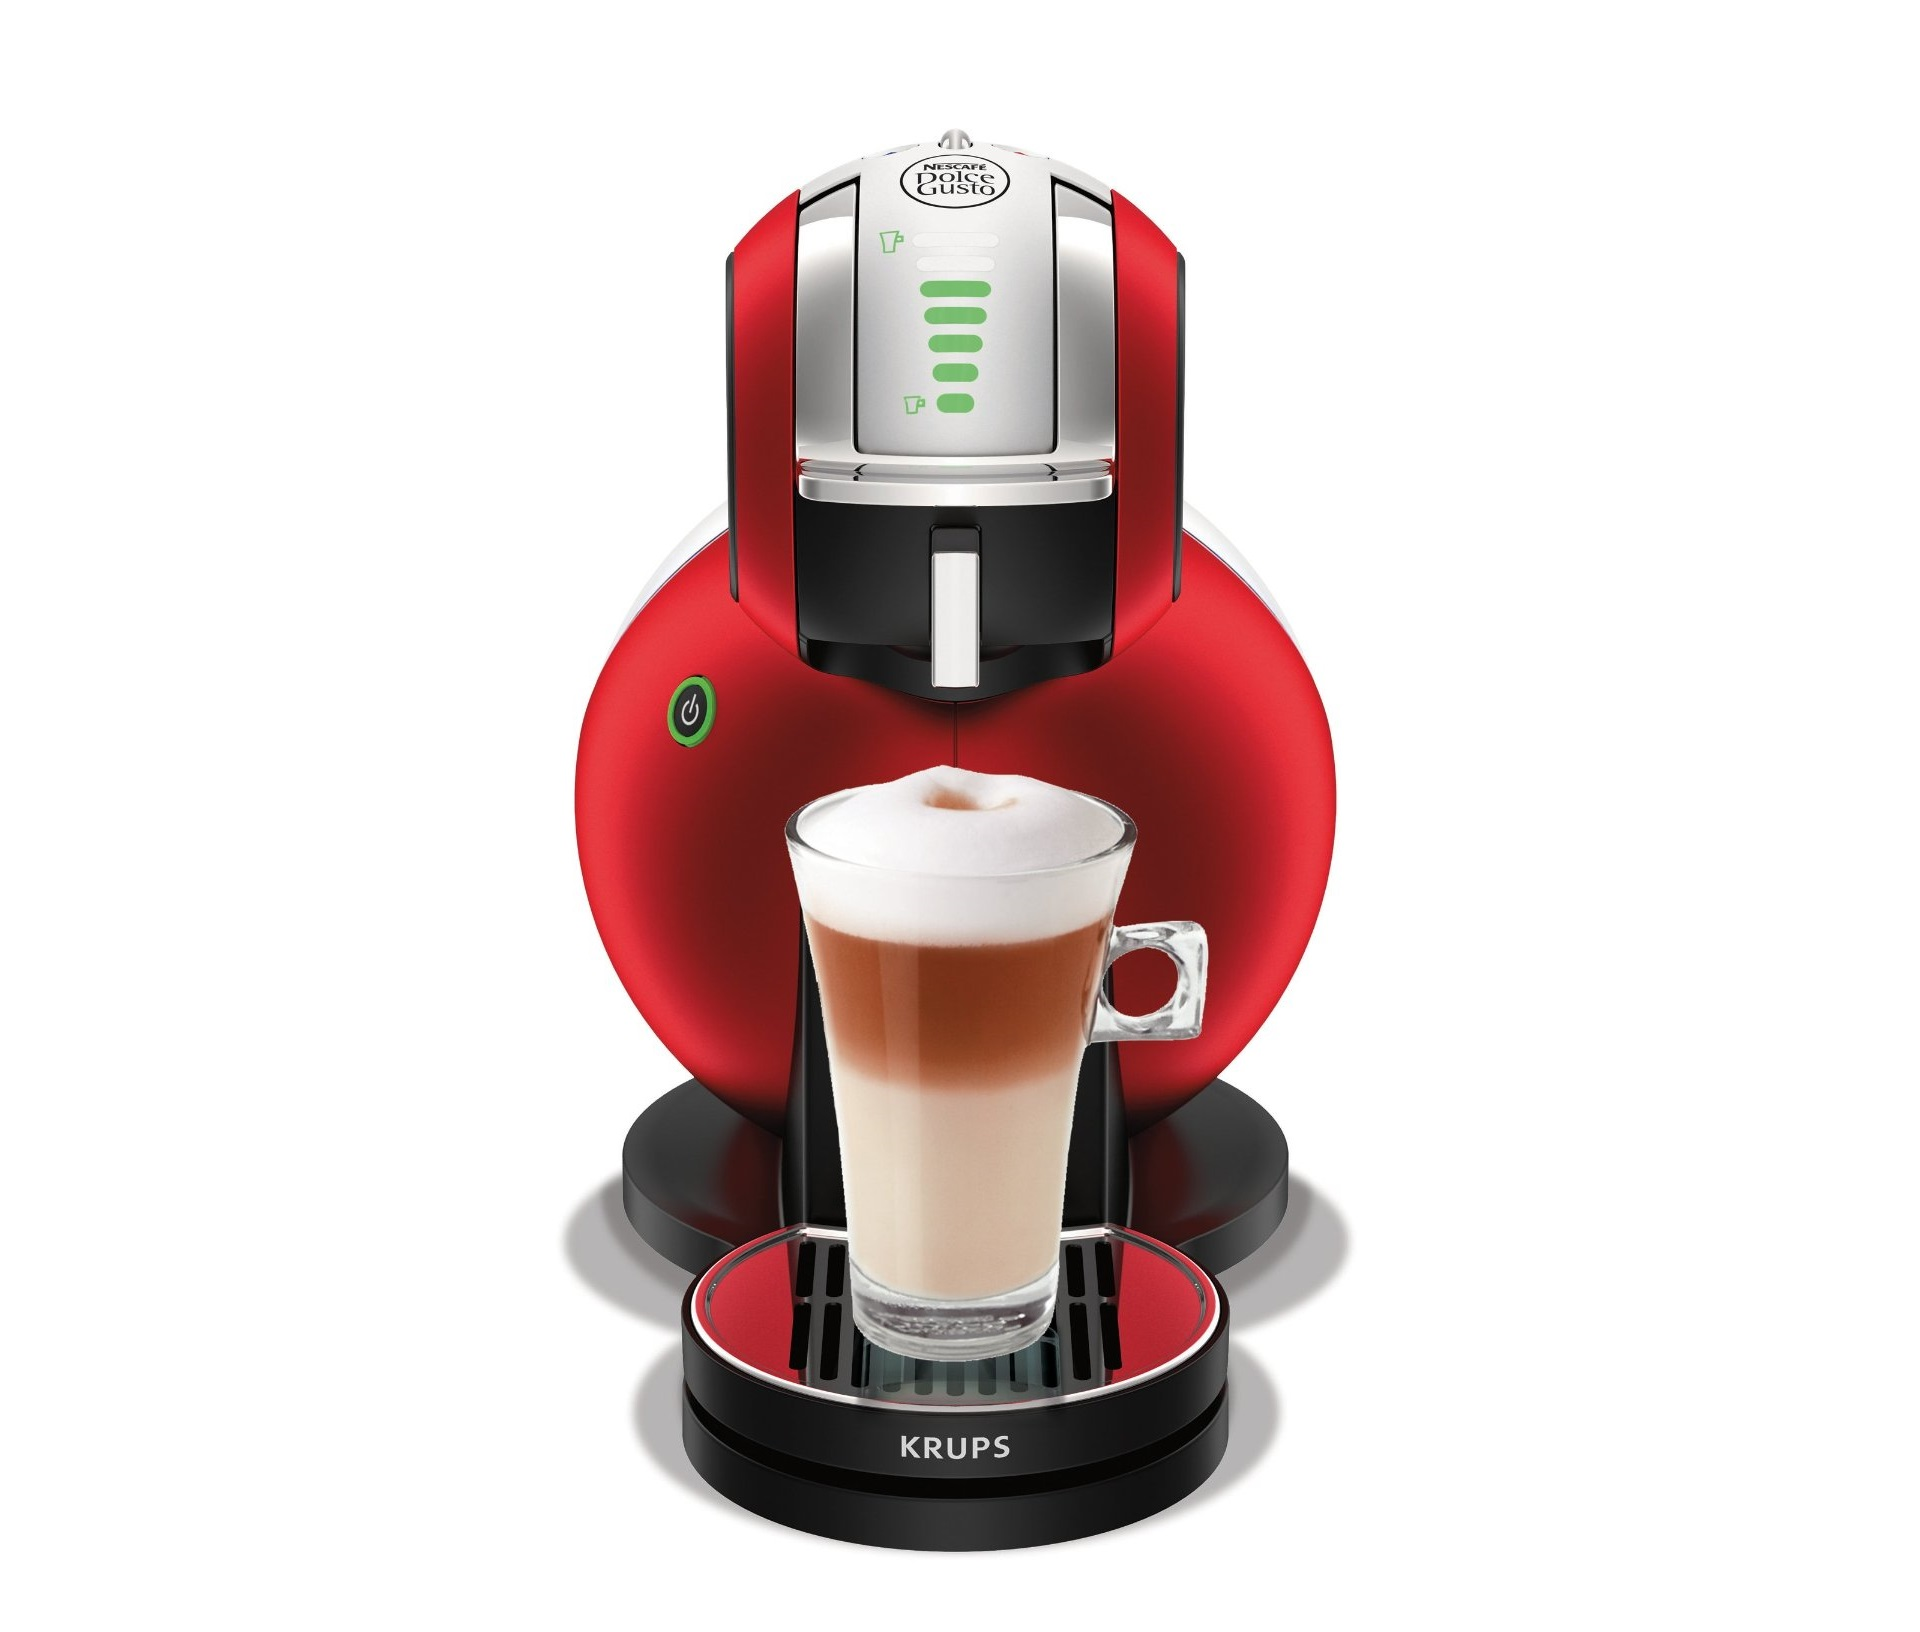 Krups-KP2305-Nescafé-Dolce-Gusto-Melody-3-Automatisch-Red-Metal1 Dolce Gusto Melody